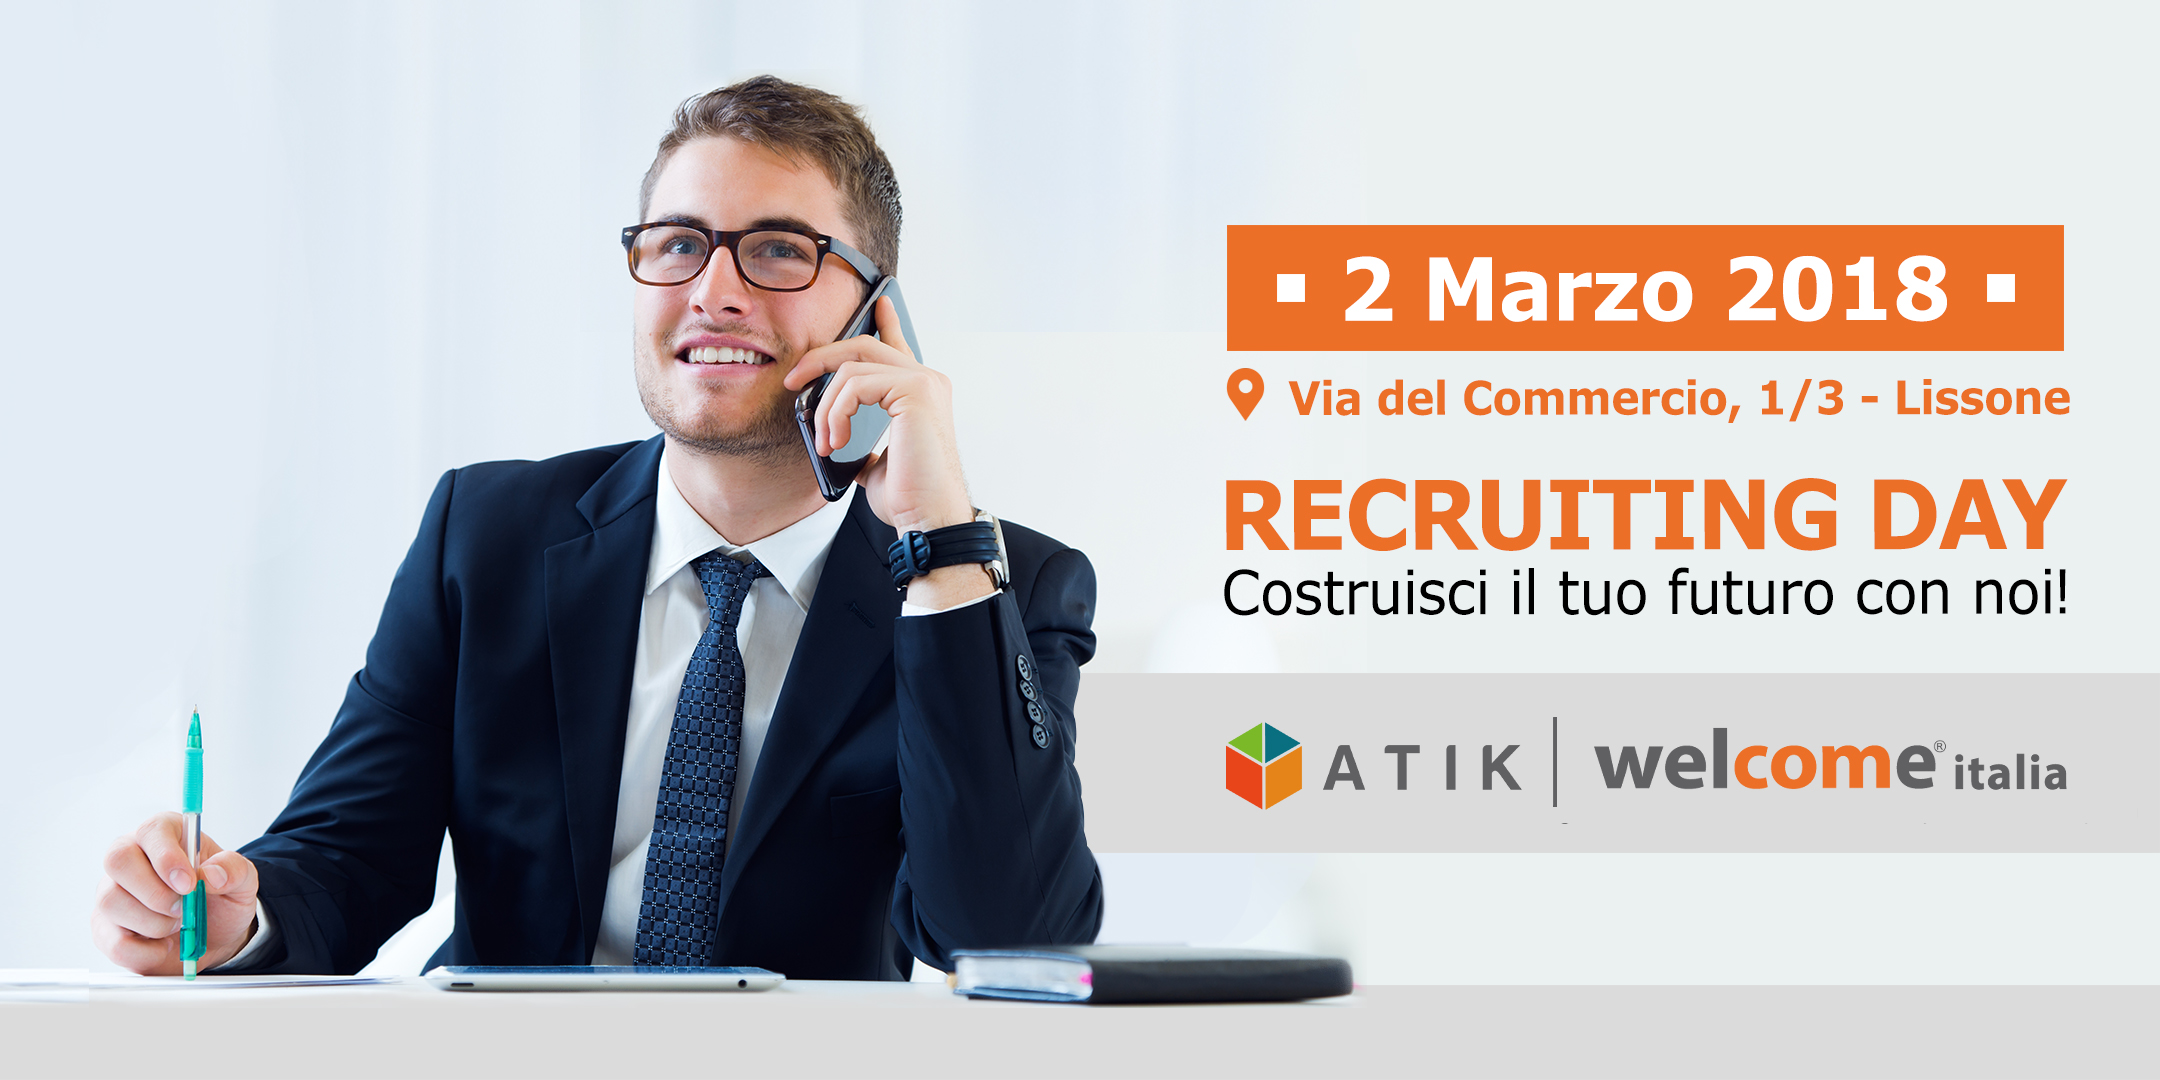 Atik e Welcome lanciano il primo Recruiting Day